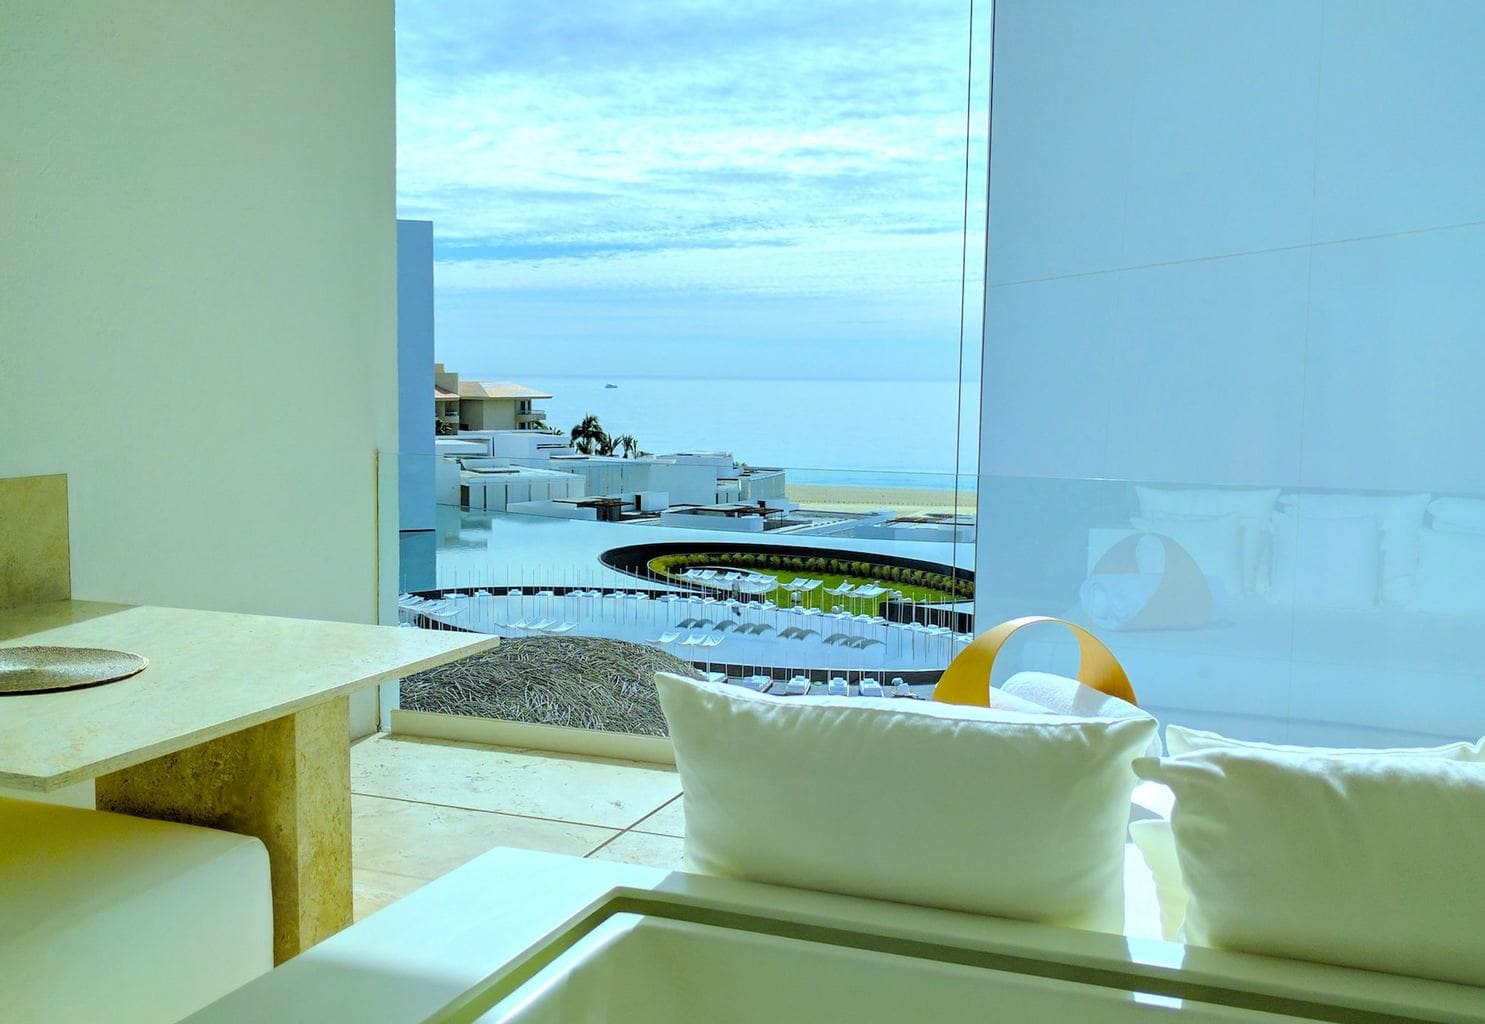 Mar Adentro Hotel room for the Guide to Los Cabos